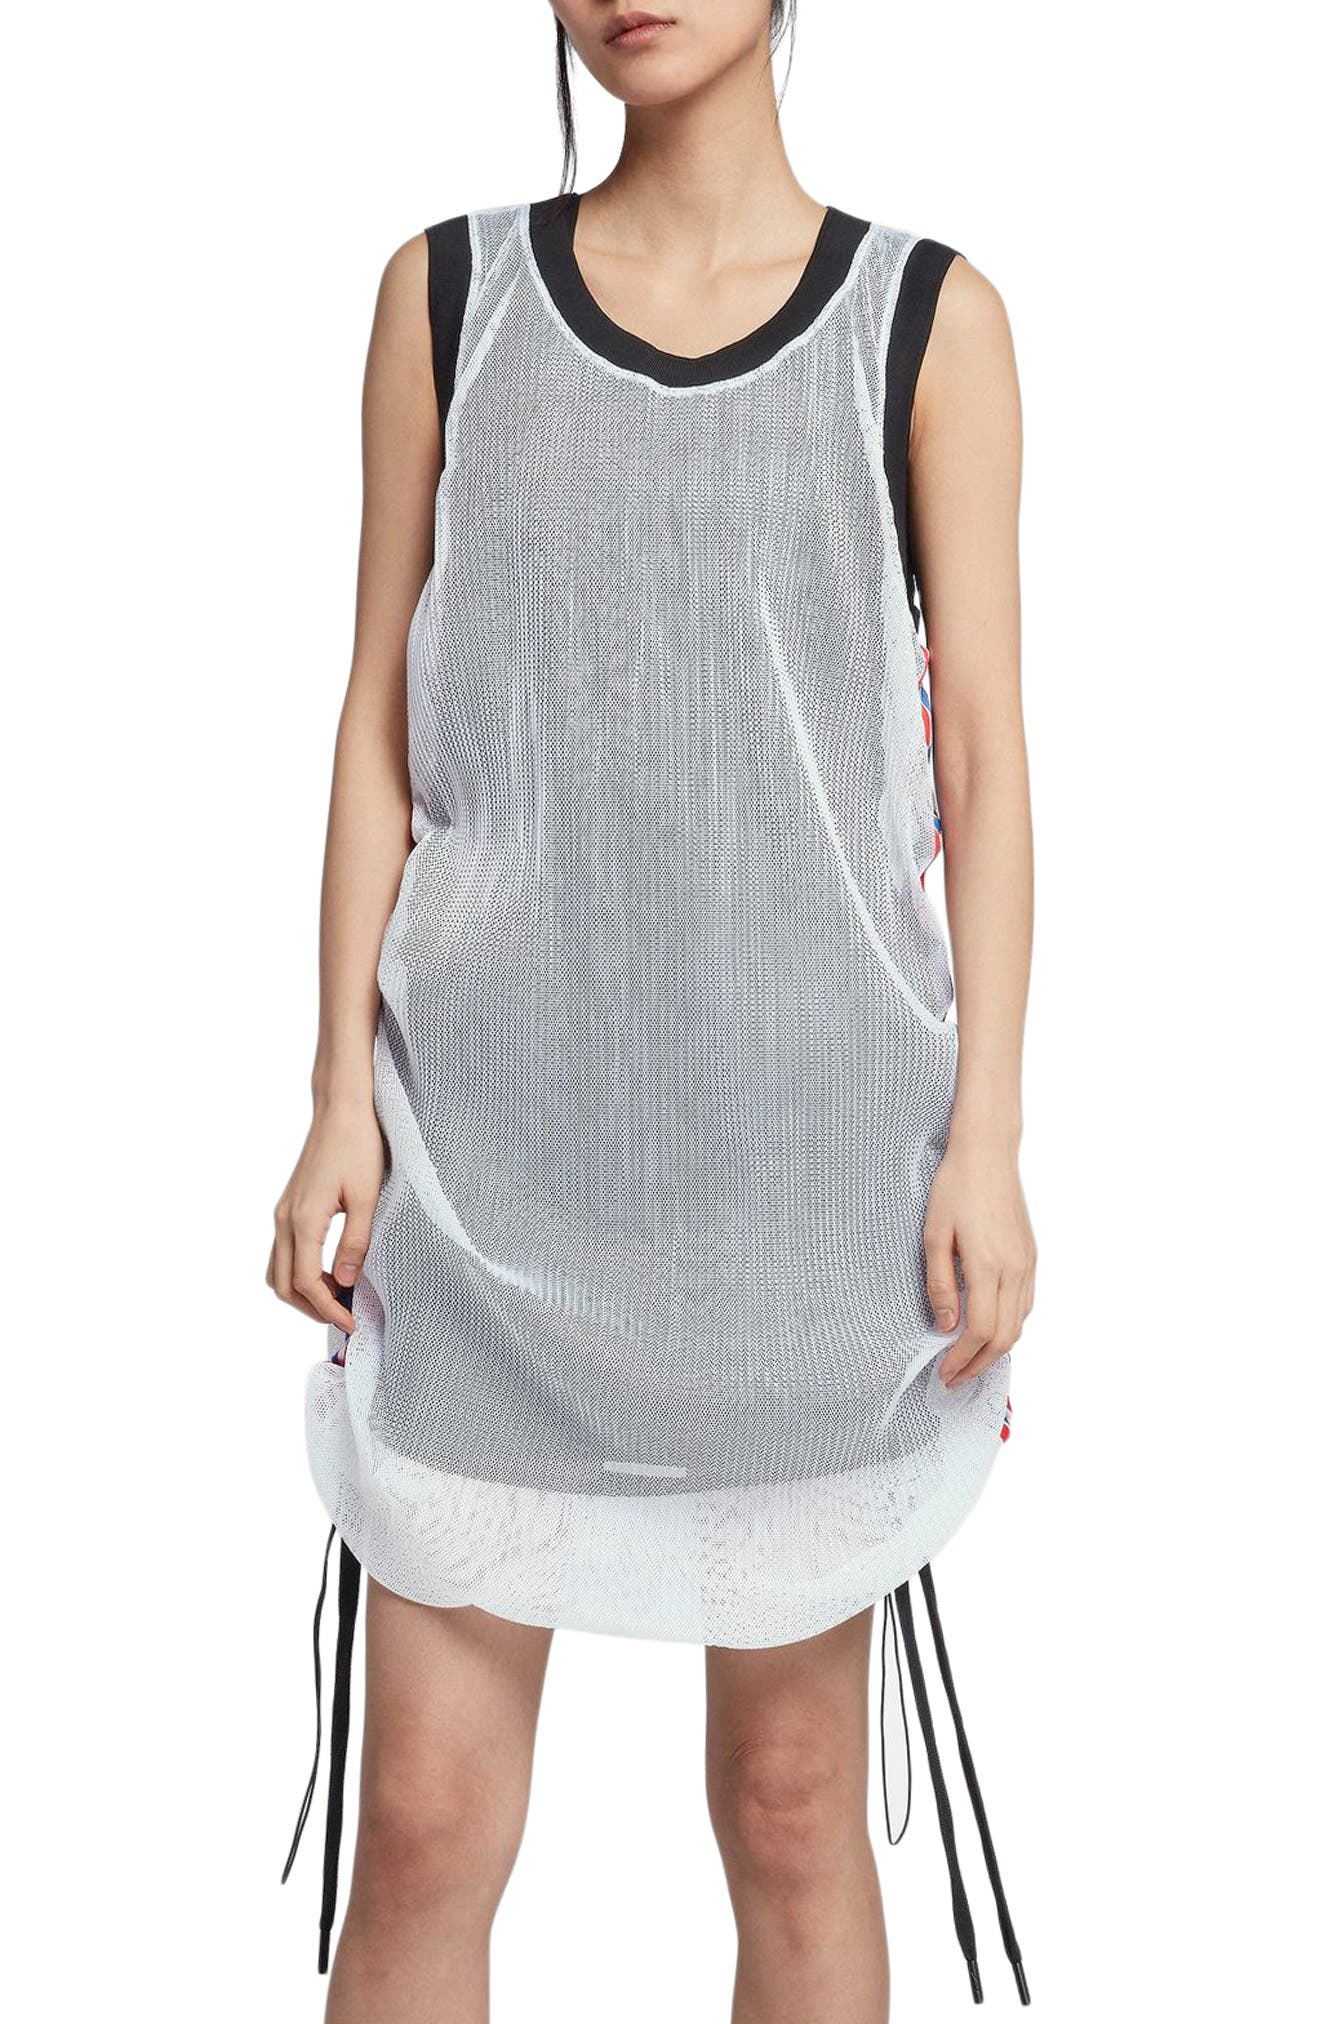 NikeLab x RT Mesh Jersey Dress,                             Alternate thumbnail 5, color,                             White